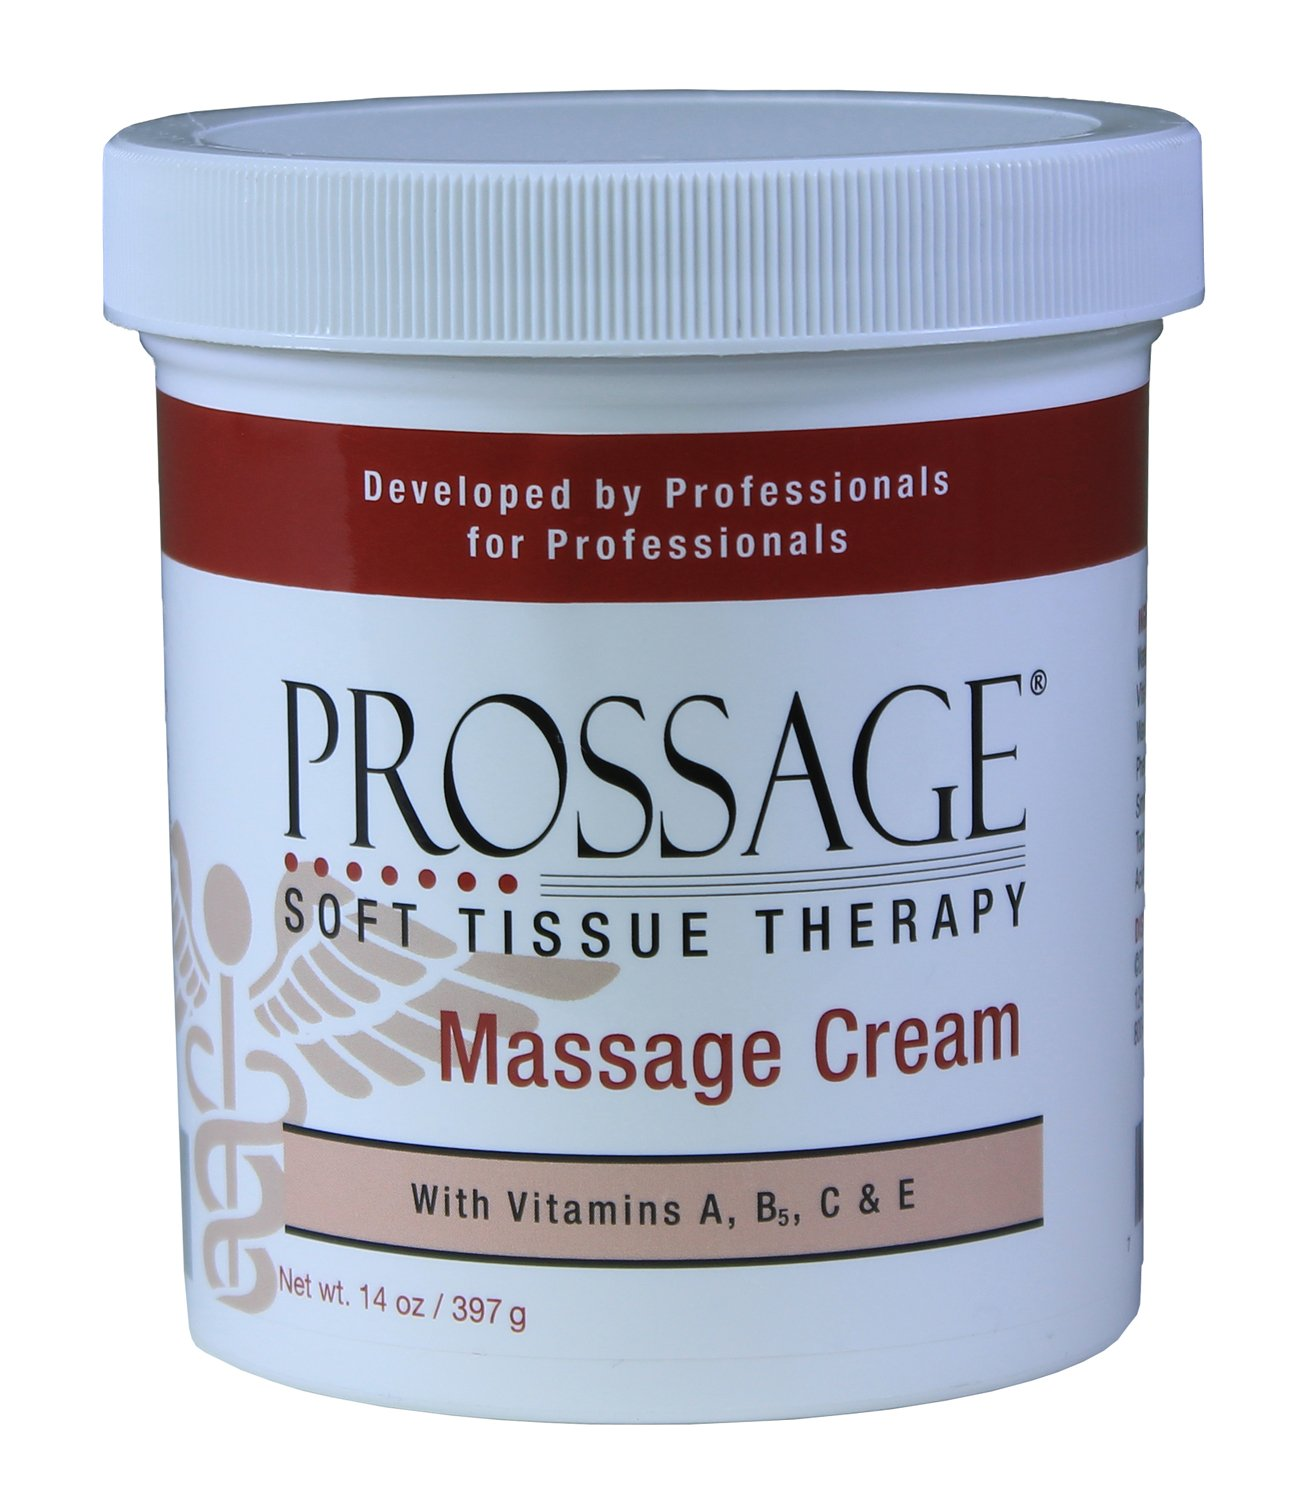 Prossage Heat Warming Relief Massage Cream for Deep Tissue Massage and Therapeutic Massage, Topical Pain Reliever for Soft Tissue Mobilization, Muscle and Joint Pain Relief, 14 Ounce Jar (Pack of 6)